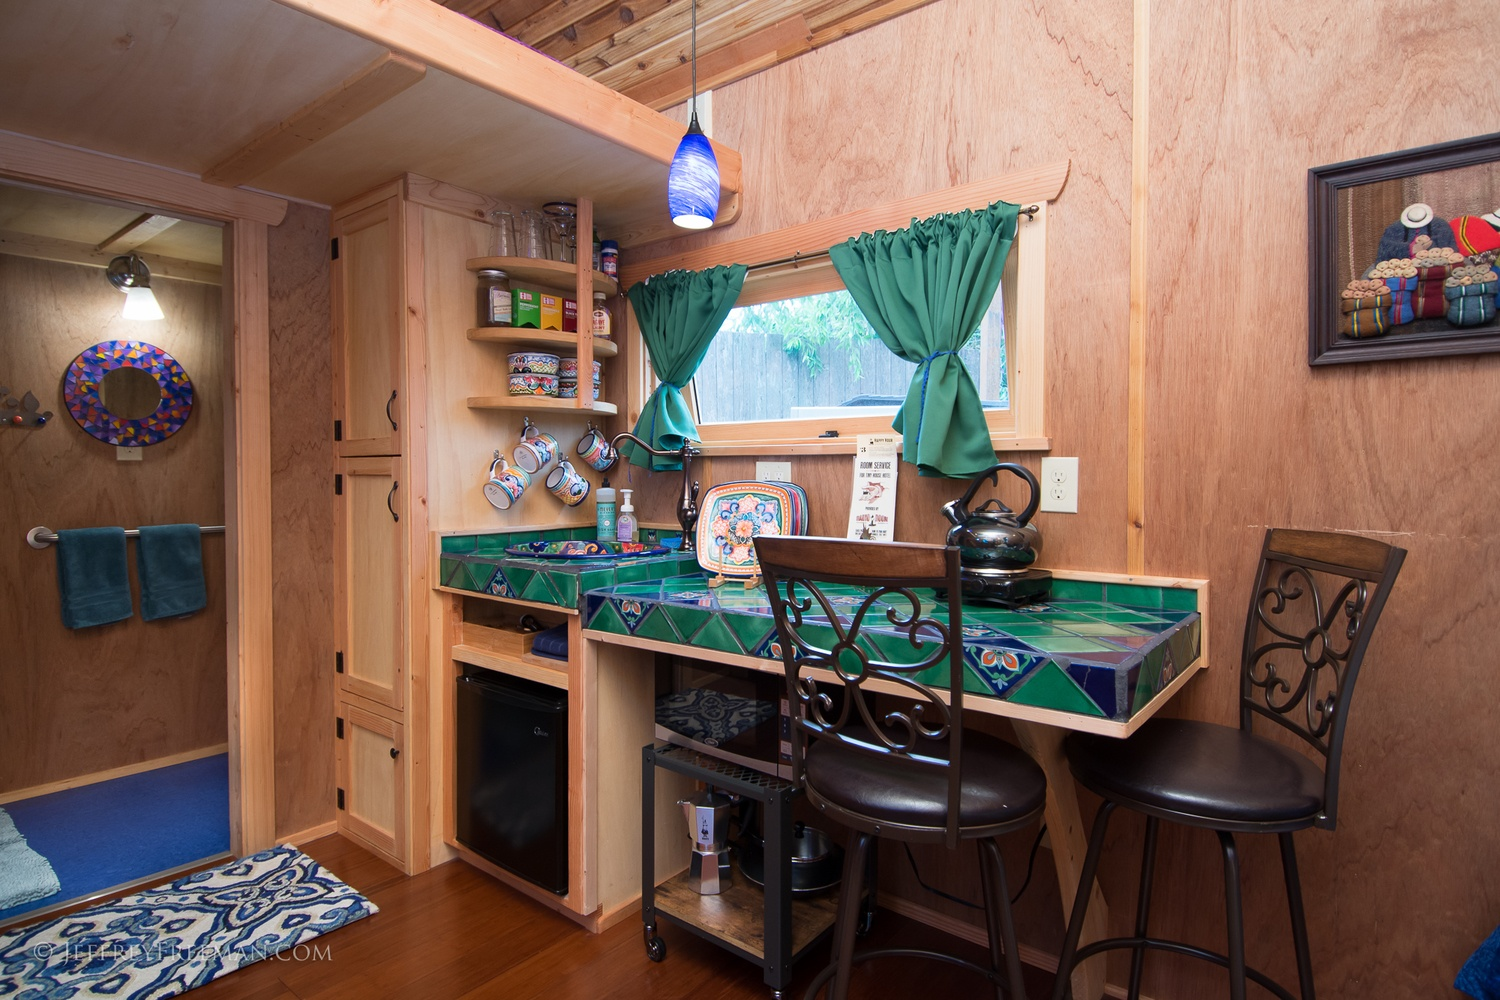 Kitchen 2 - Pacifica by Zyl Vardos at the Tiny House Hotel